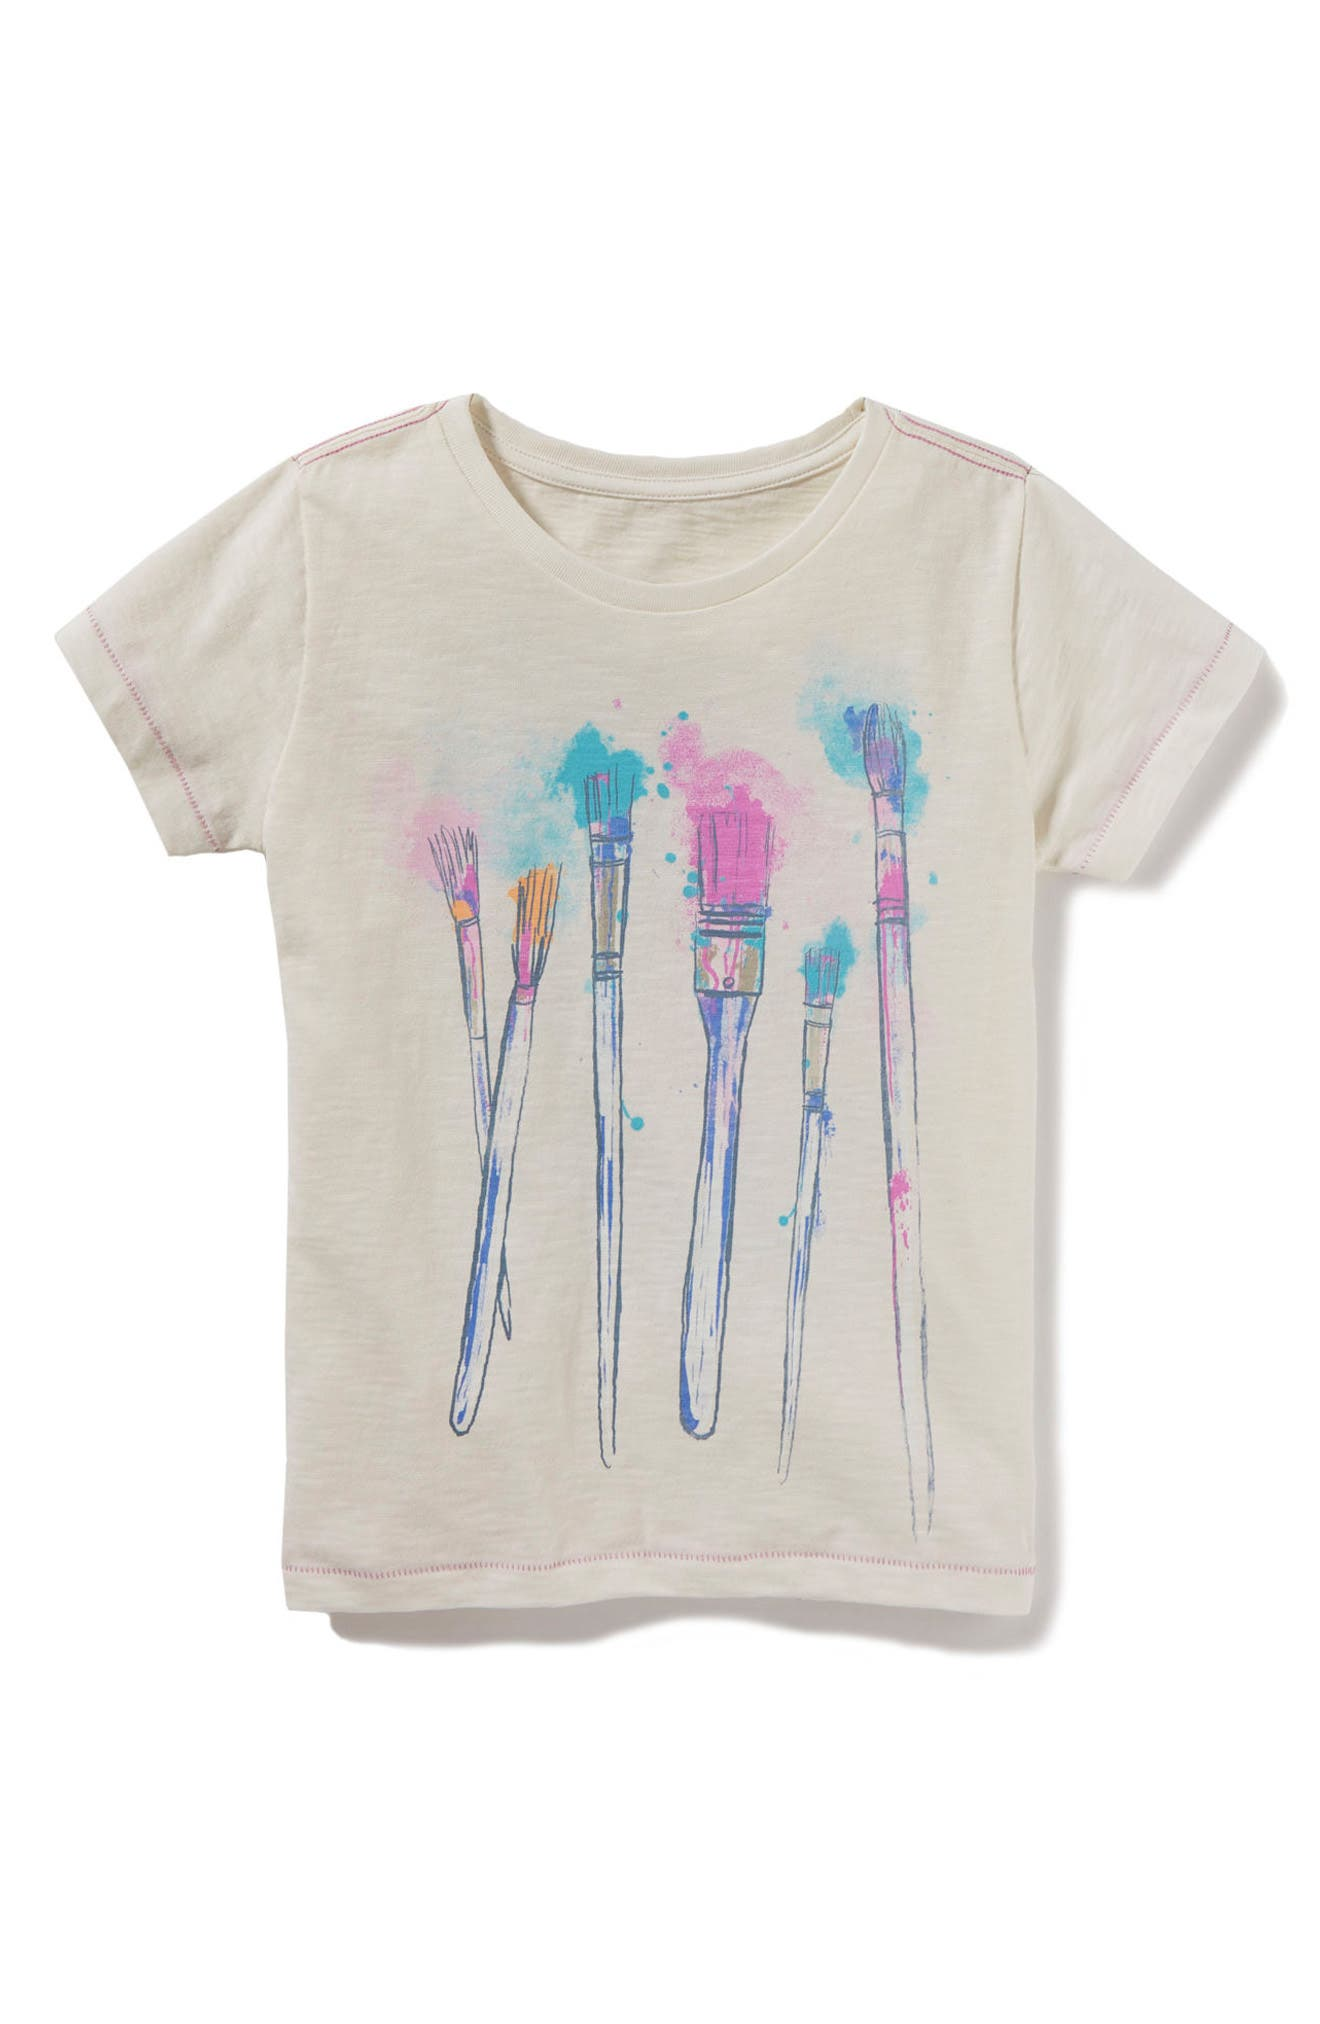 Art is Not Graphic Tee,                         Main,                         color, White